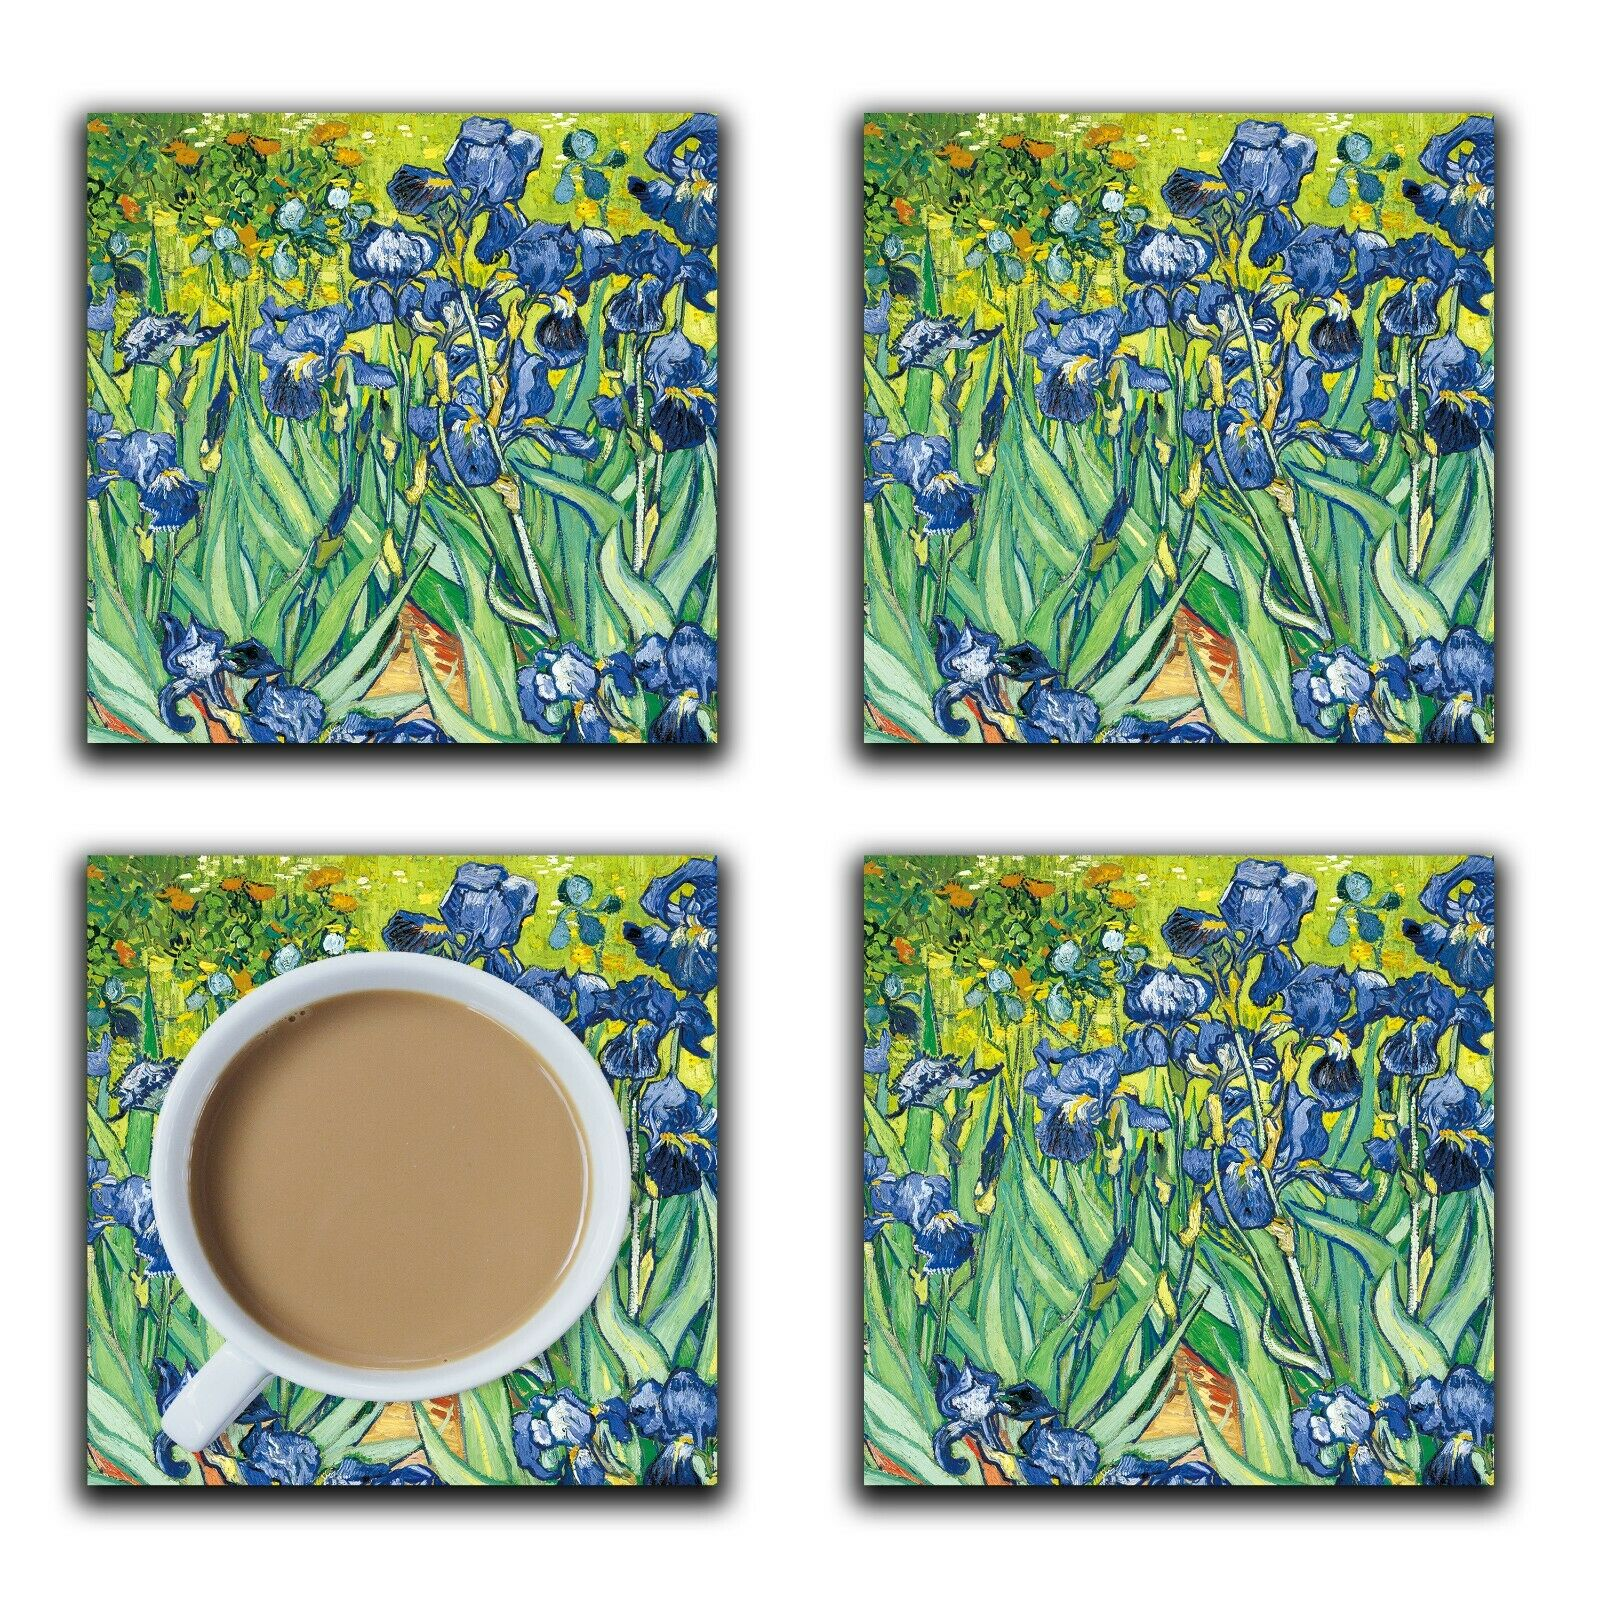 Embossi Printed Van Gogh Irises, wood or ceramic tile, set of 4 Coasters